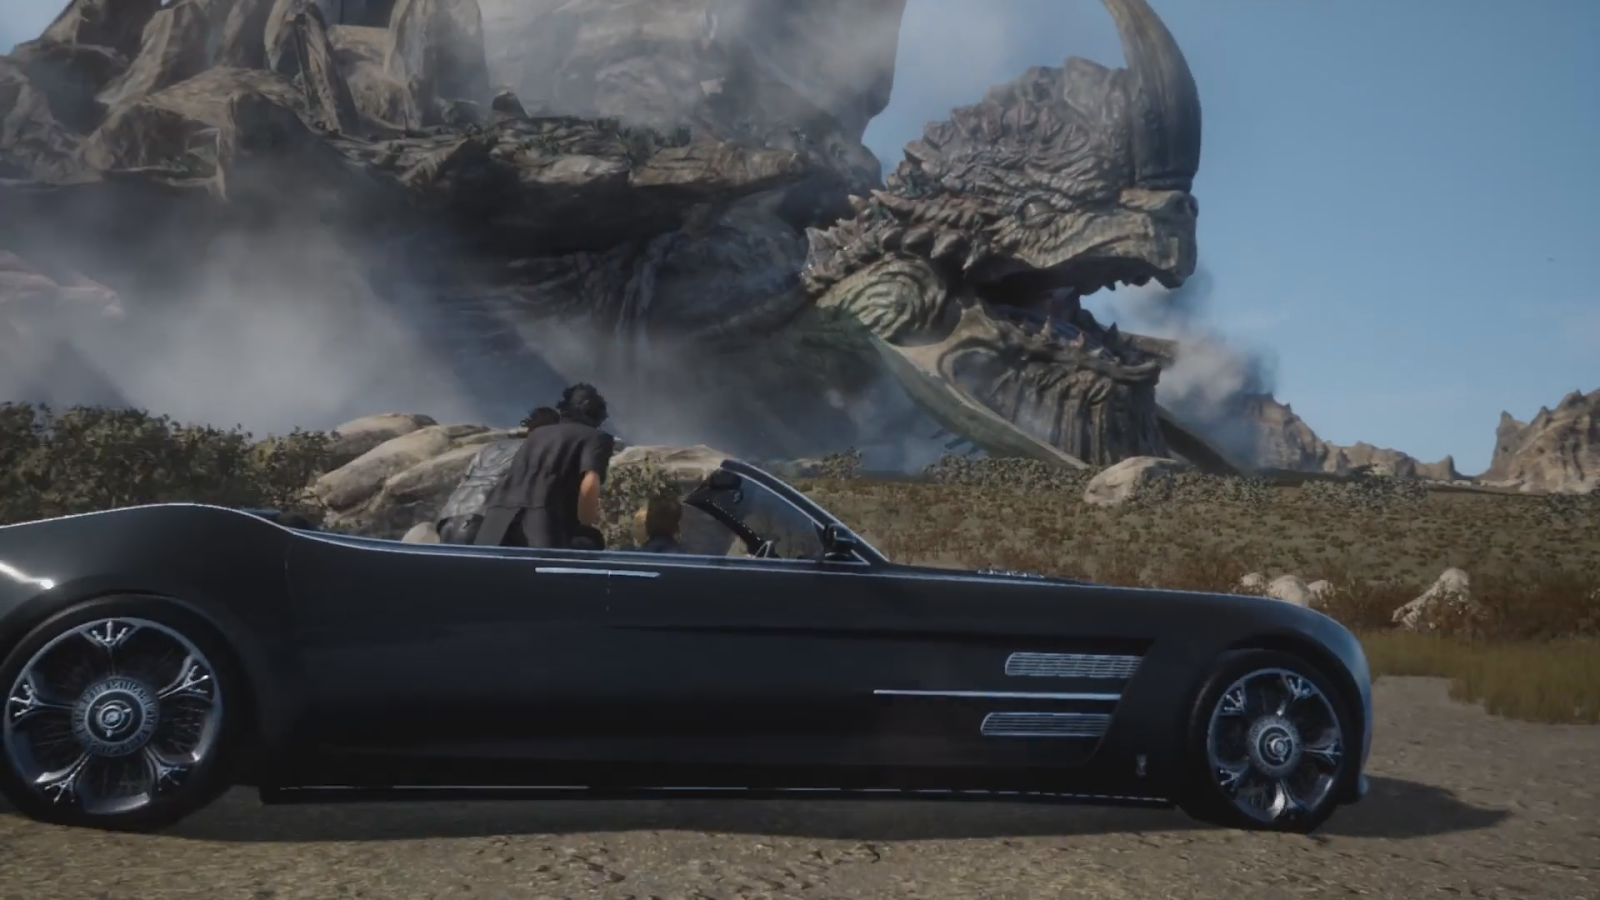 Visually Final Fantasy XV Proves That Square Enix Has A Real Eye Towards  Creating A Pretty Scene, And This Is Often Emphasized In Promptou0027s  Photographs He ...